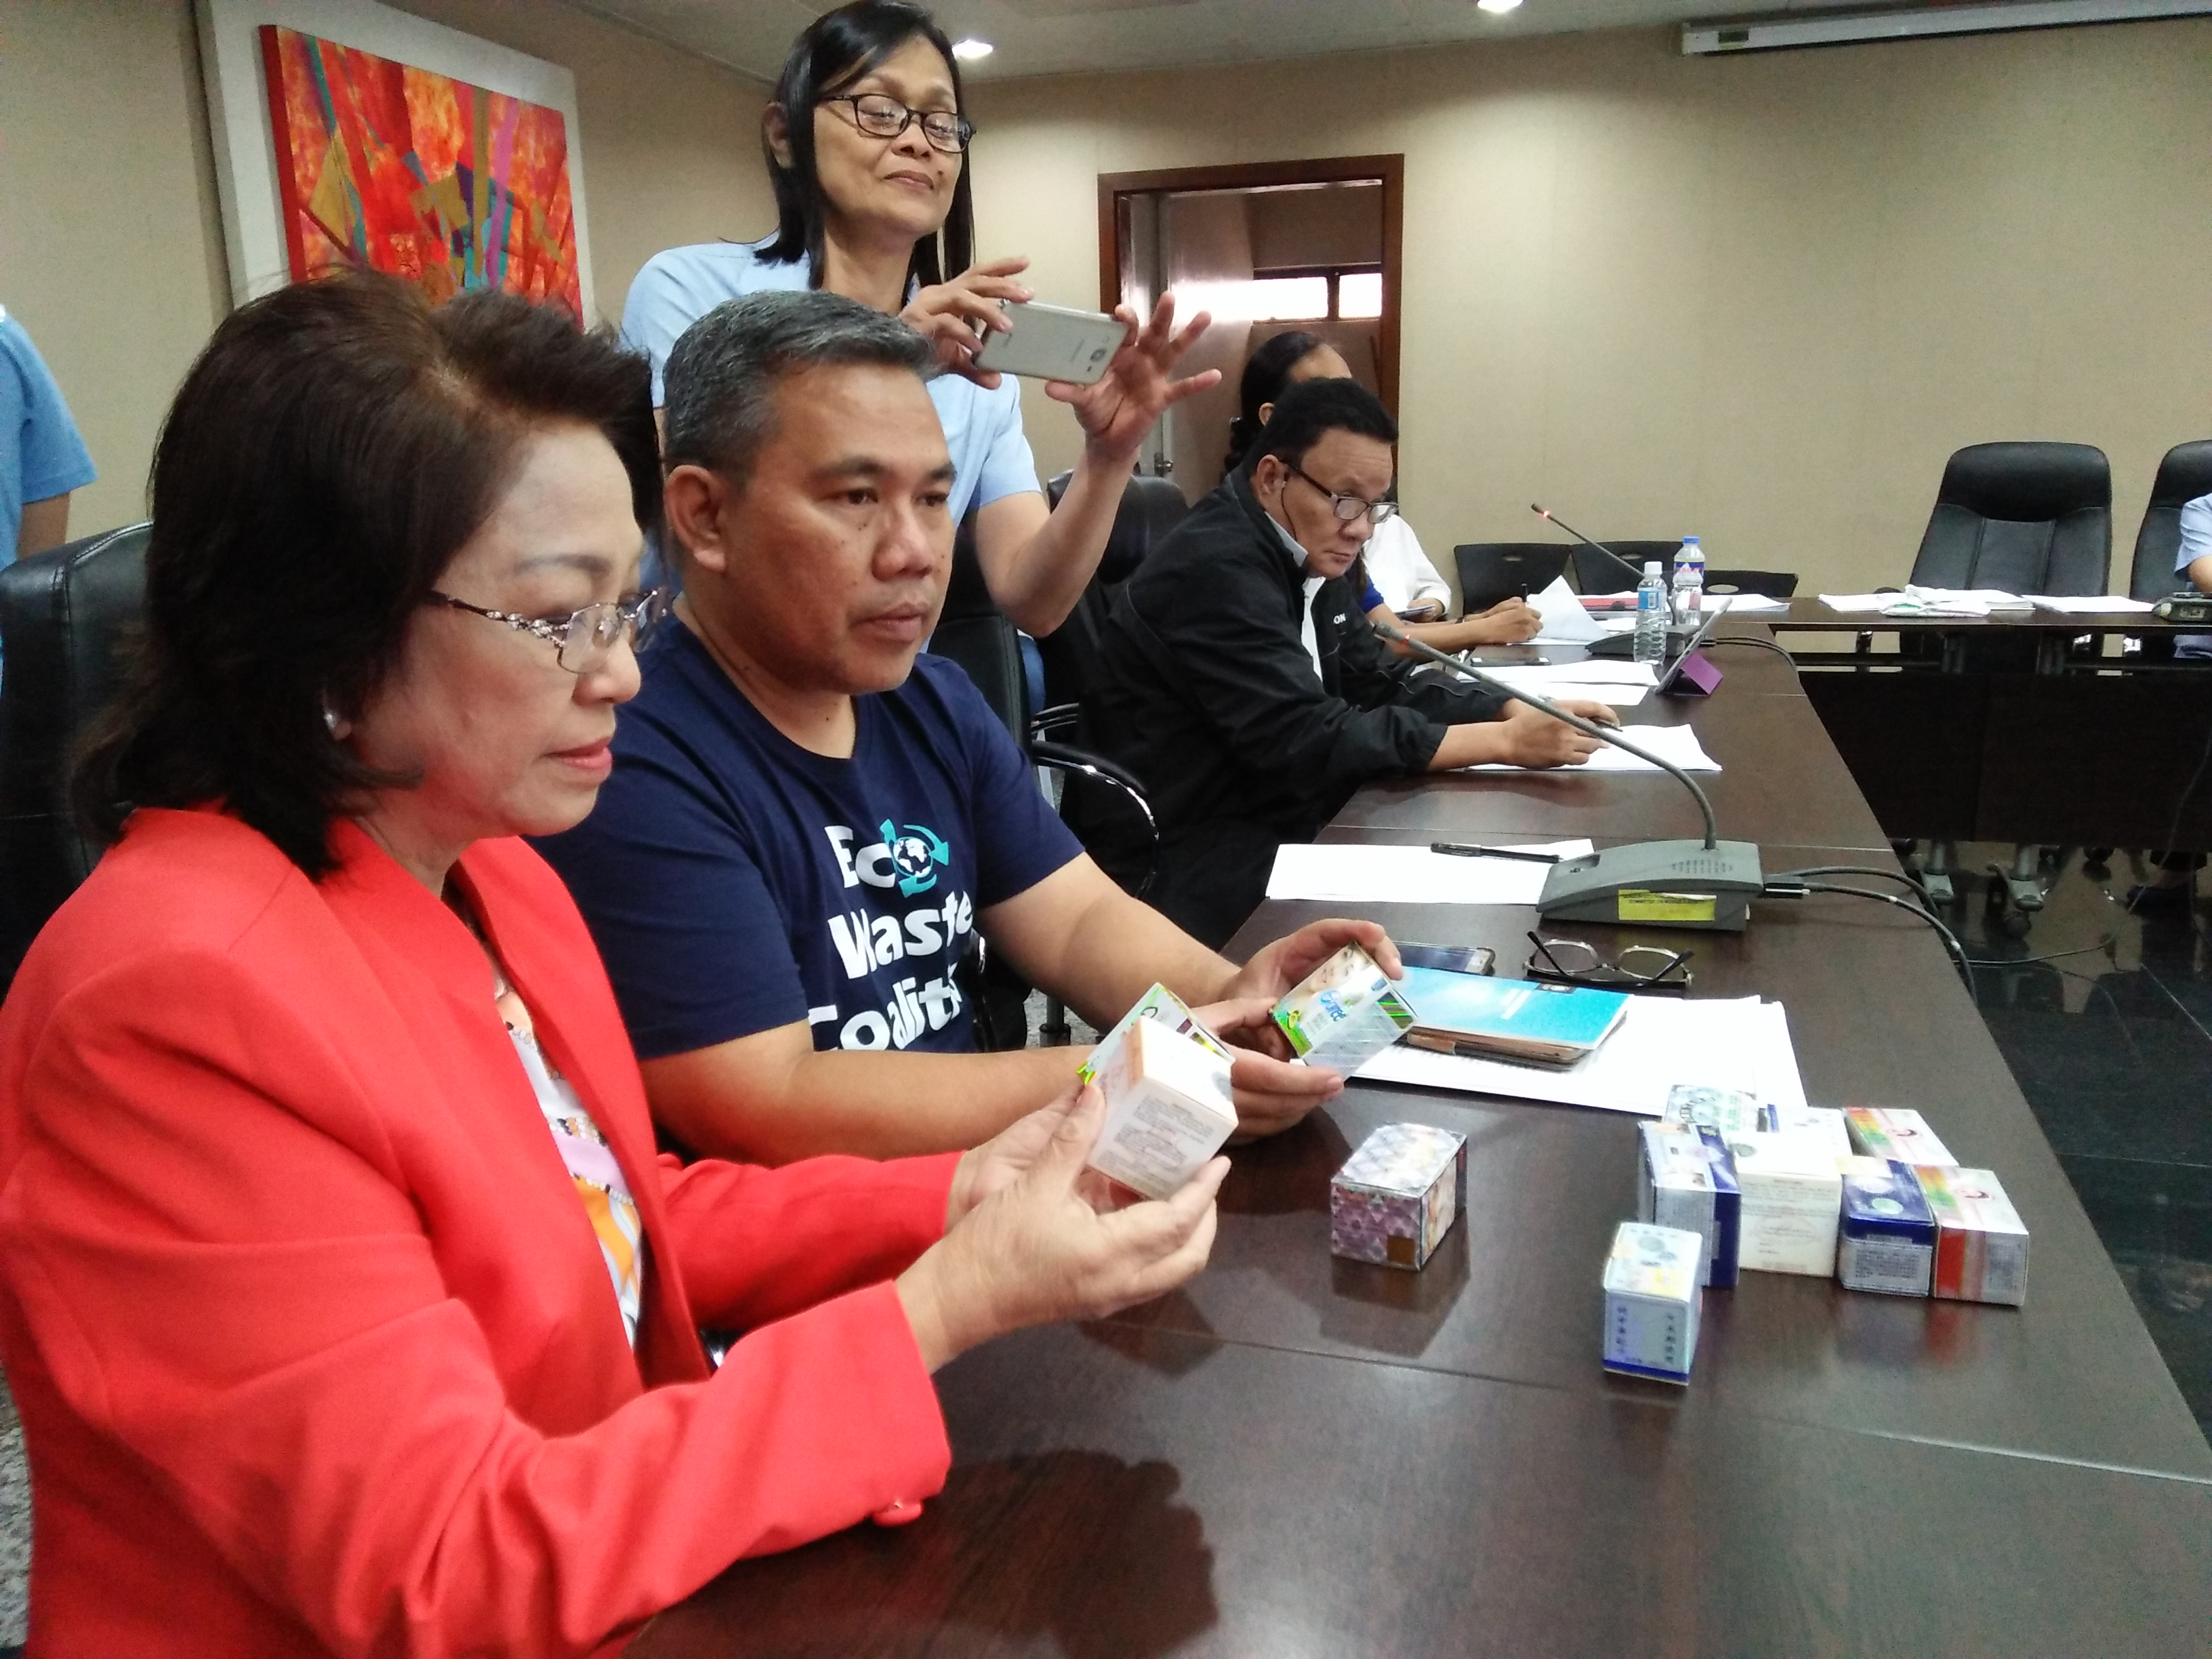 Quezon City District 1 Councilor Elizabeth Delarmente inspects contraband cosmetics contaminated with mercury that were obtained by the EcoWaste Coalition during their product test buys in the city.